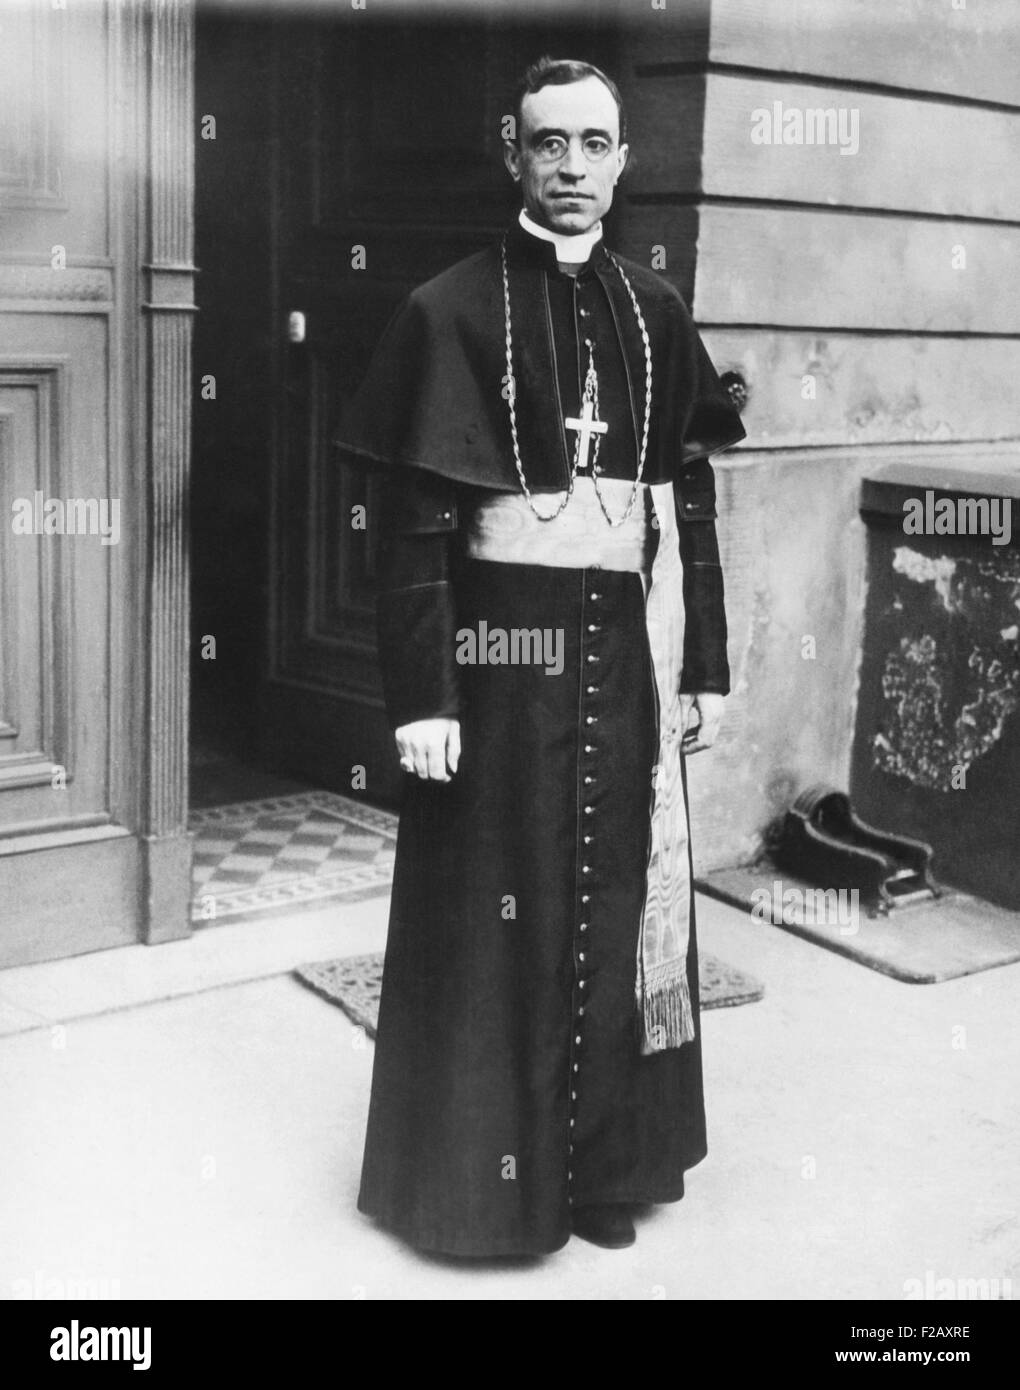 Bishop Eugenio Pacelli, the future Pope Pius XII, ca. 1925. From 1917-1929 he was the Papal Ambassador in Munich Stock Photo